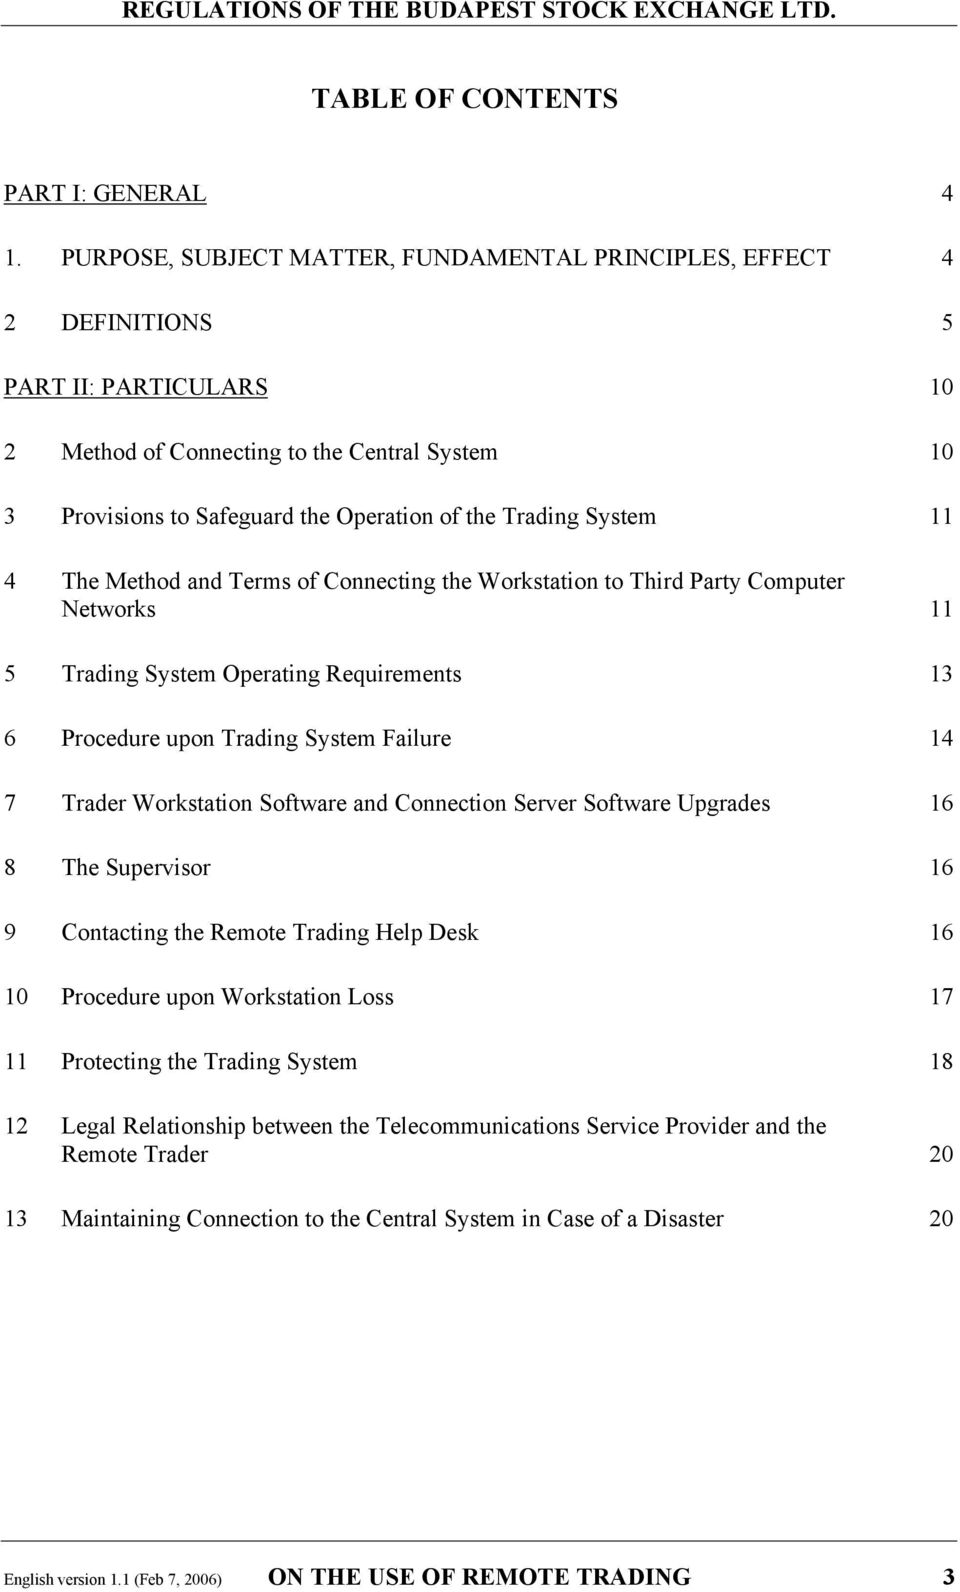 Trading System 11 4 The Method and Terms of Connecting the Workstation to Third Party Computer Networks 11 5 Trading System Operating Requirements 13 6 Procedure upon Trading System Failure 14 7